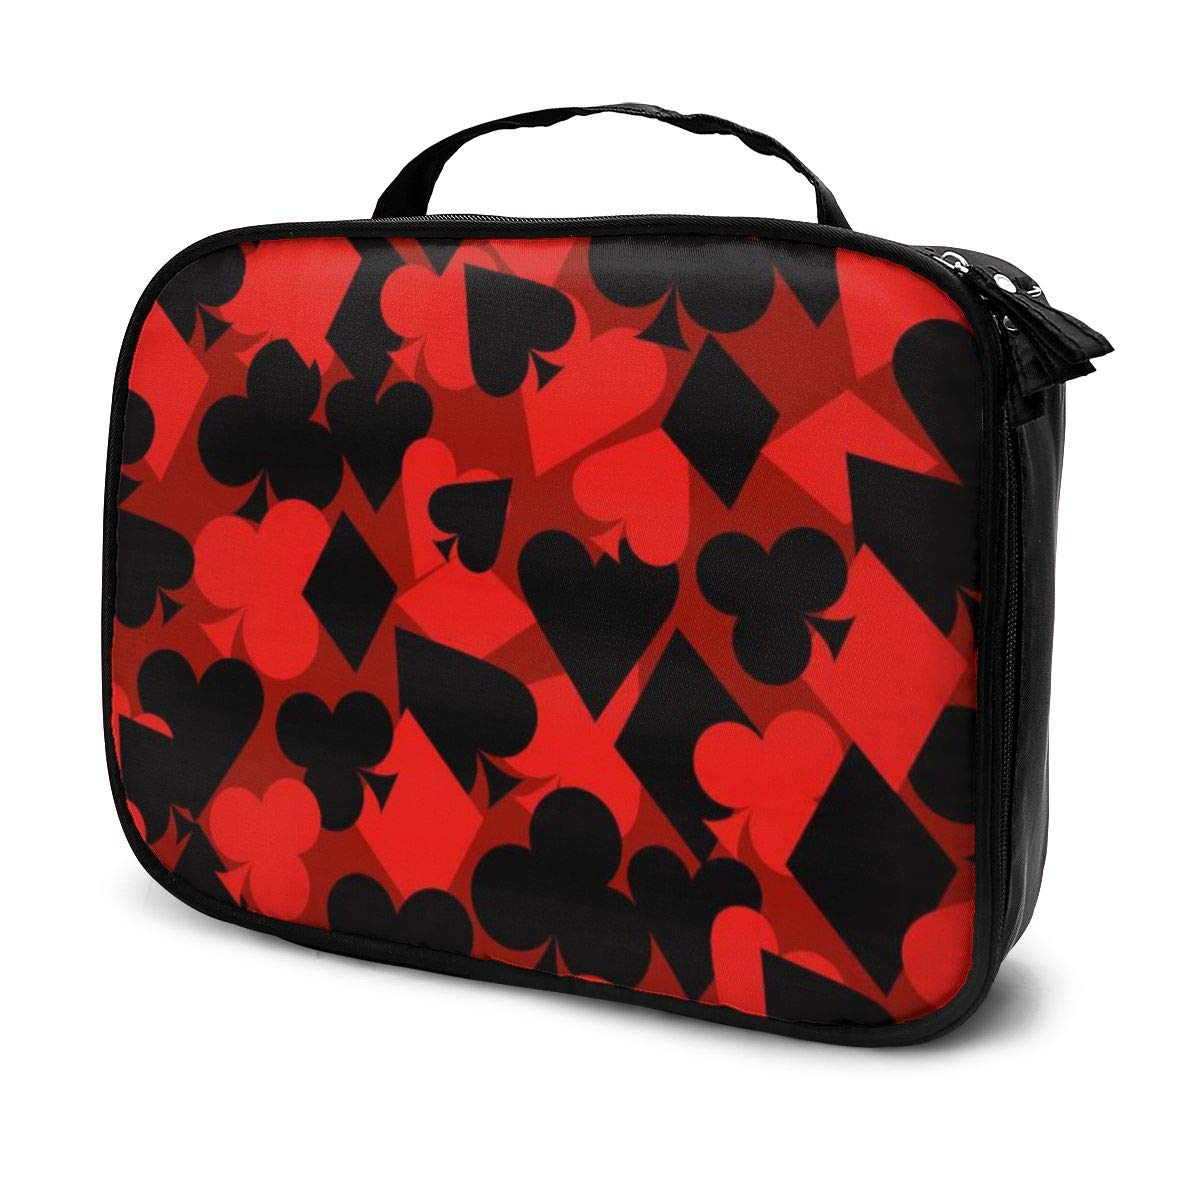 Poker Symbol Makeup We OFFer at Max 77% OFF cheap prices Case Train BagTravel C